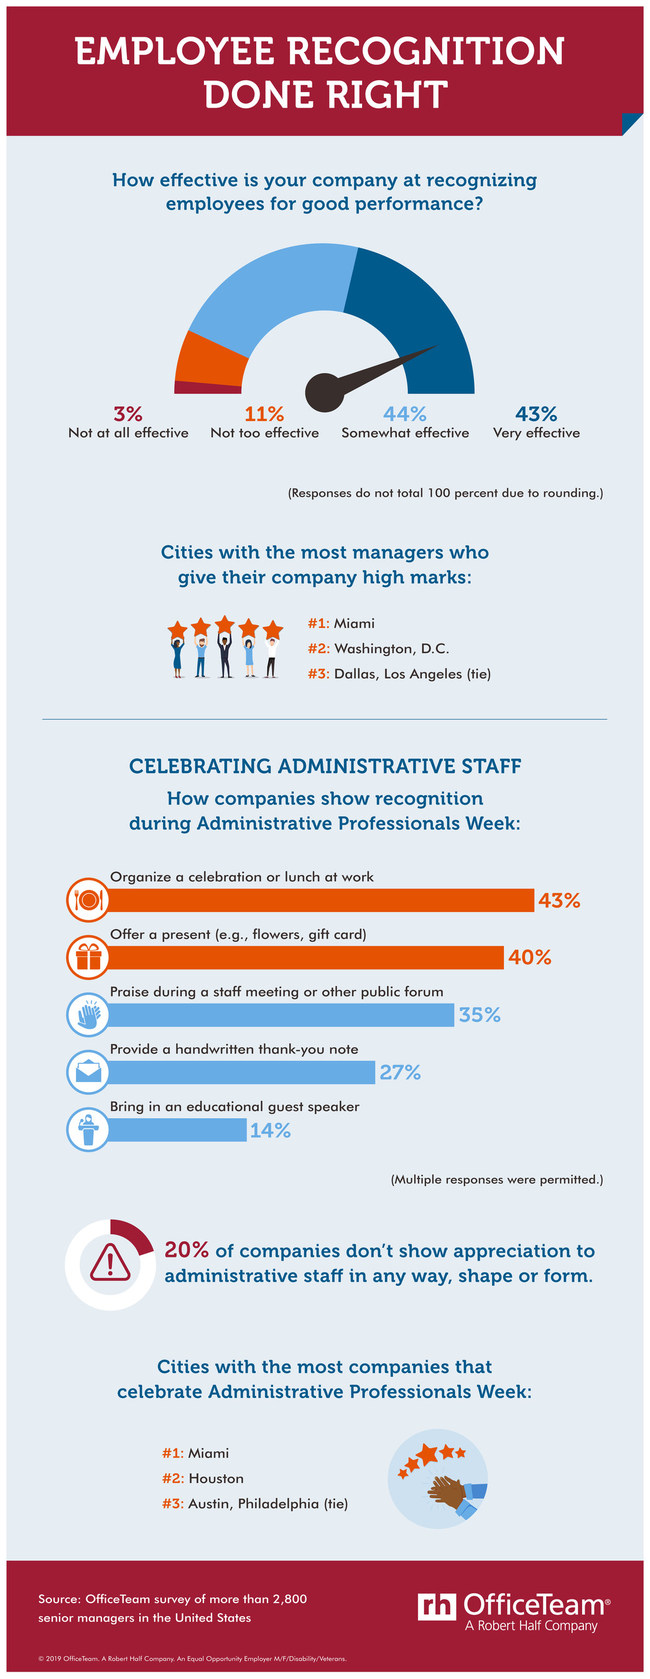 A new OfficeTeam survey finds less than half of senior managers think their company's employee recognition efforts are very effective. View this infographic for the research findings: https://www.roberthalf.com/blog/management-tips/employee-recognition-done-right.